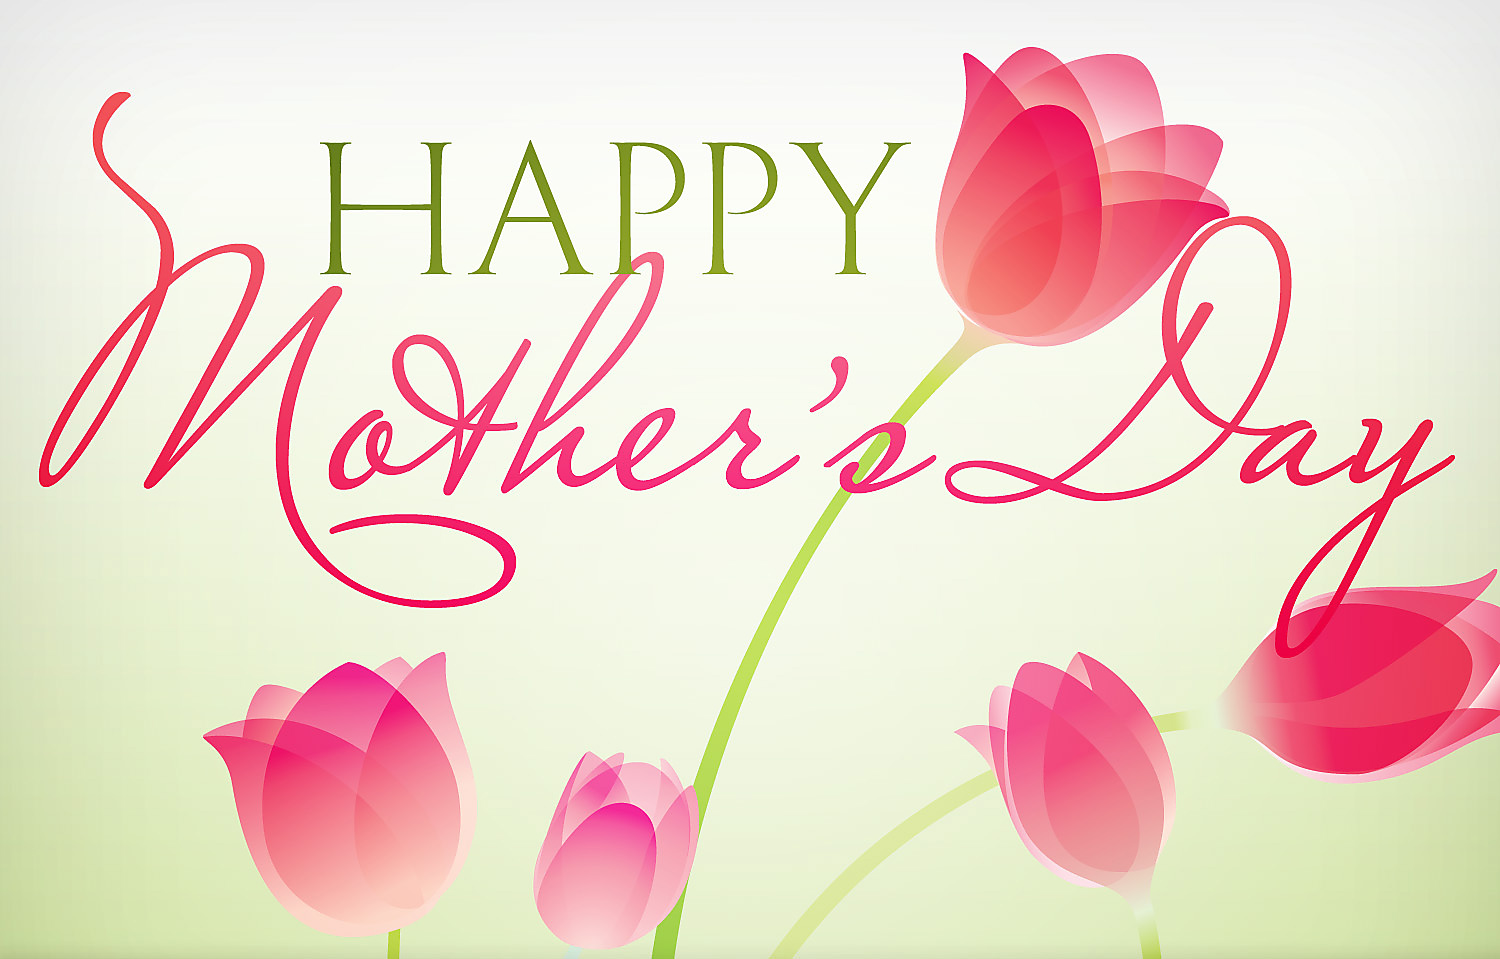 Happy Mothers Day Wallpapers mothers day on Rediff Pages 1500x959